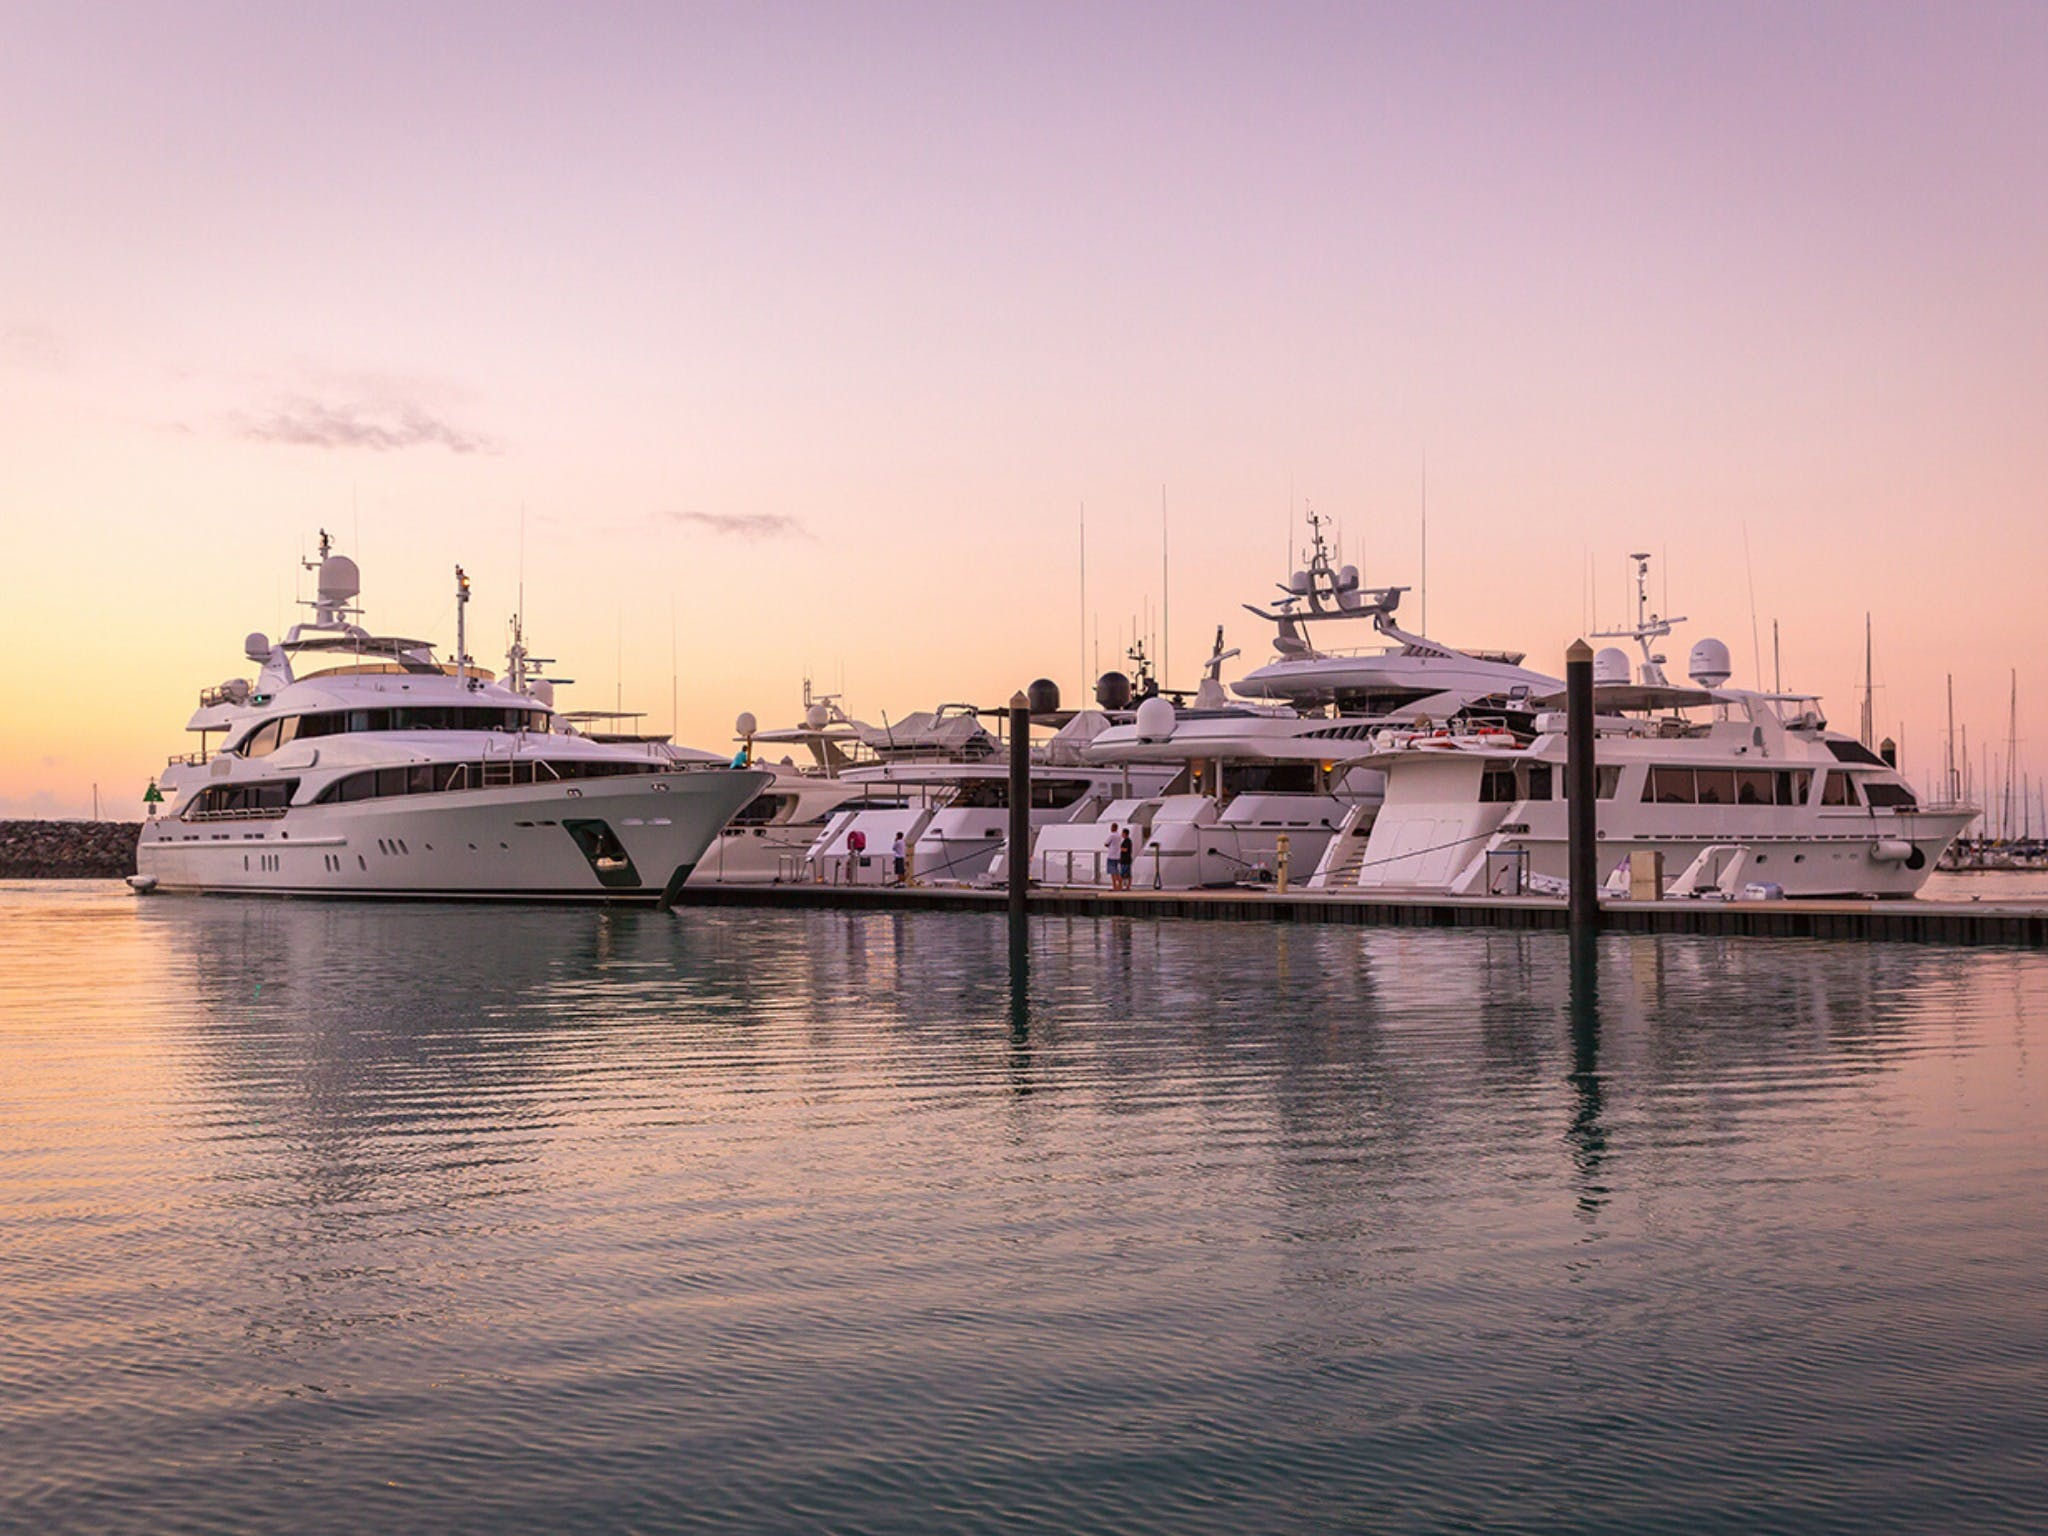 Australian Superyacht Rendezvous - Great Barrier Reef edition - WA Accommodation